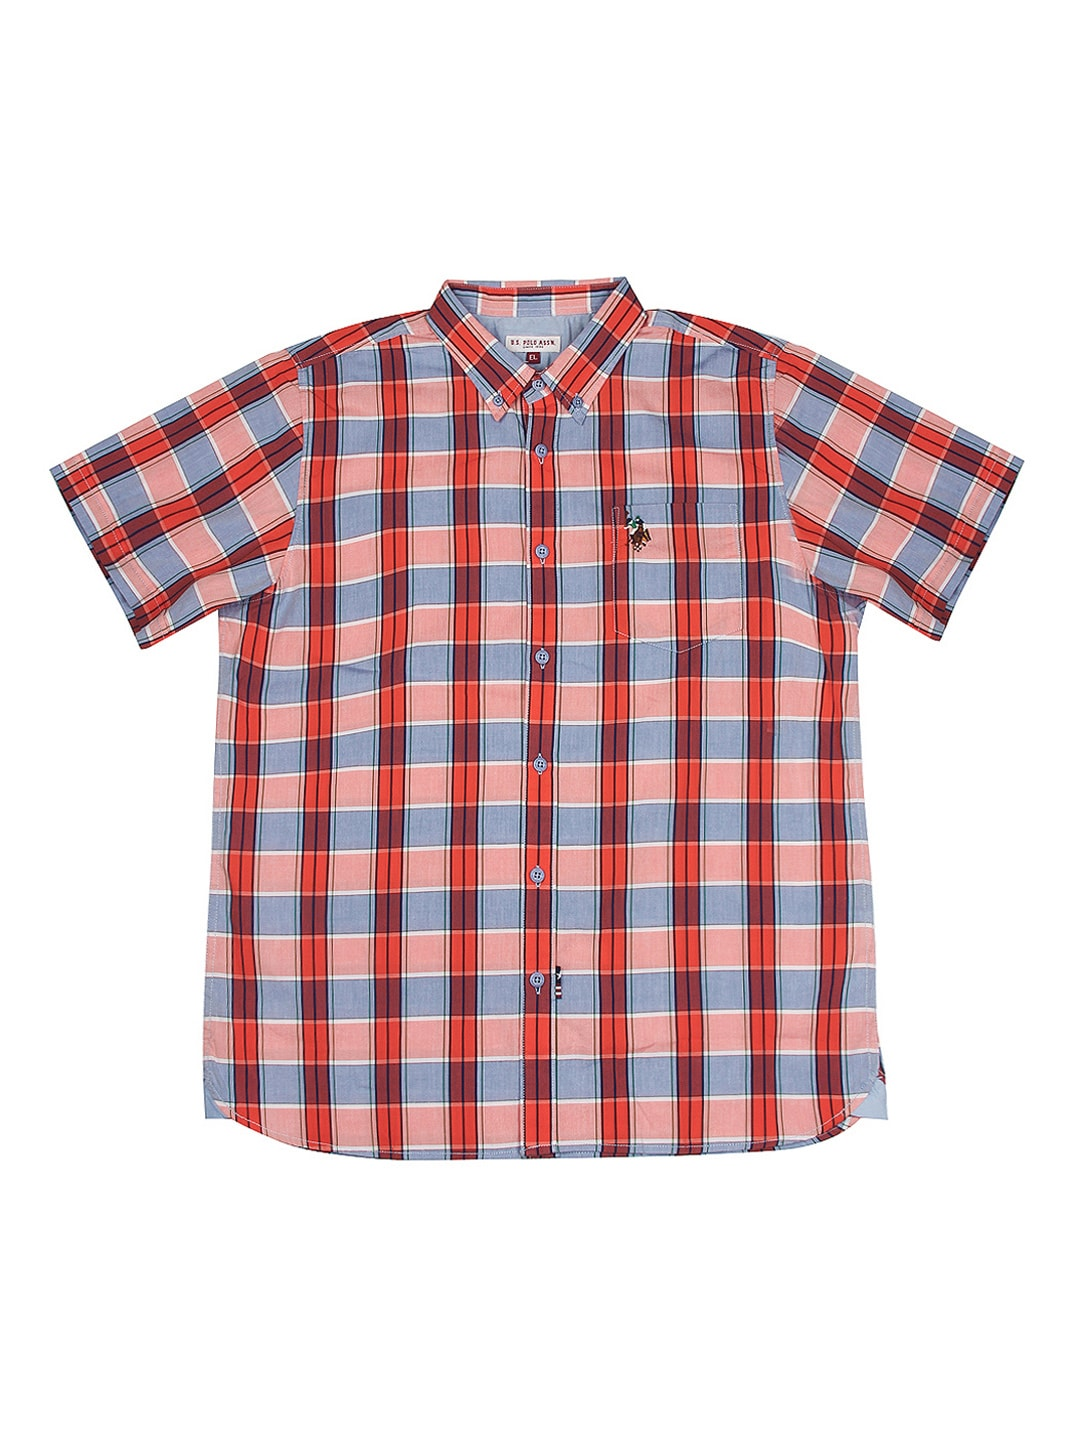 U.S. Polo Assn. Kids Boys Orange & Blue Checked Shirt